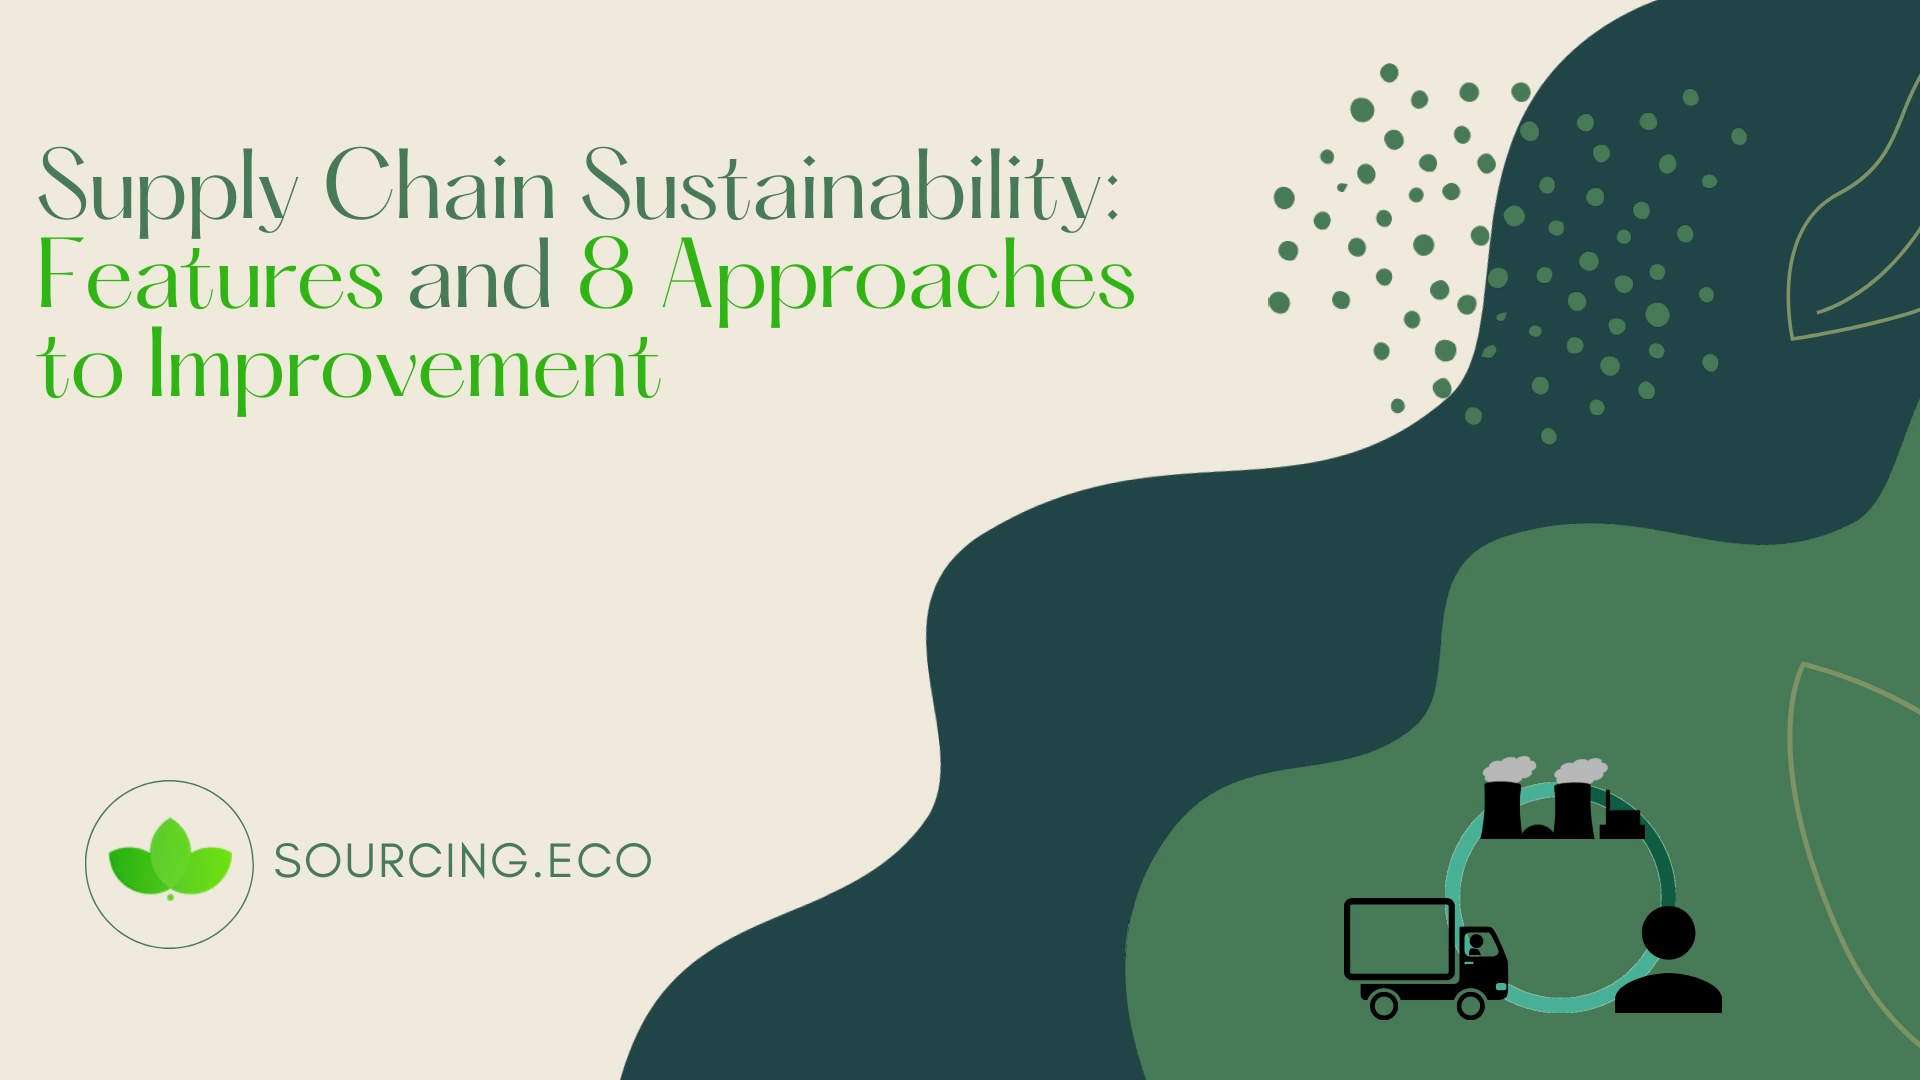 Supply Chain Sustainability: Features and 8 Approaches to Improvement